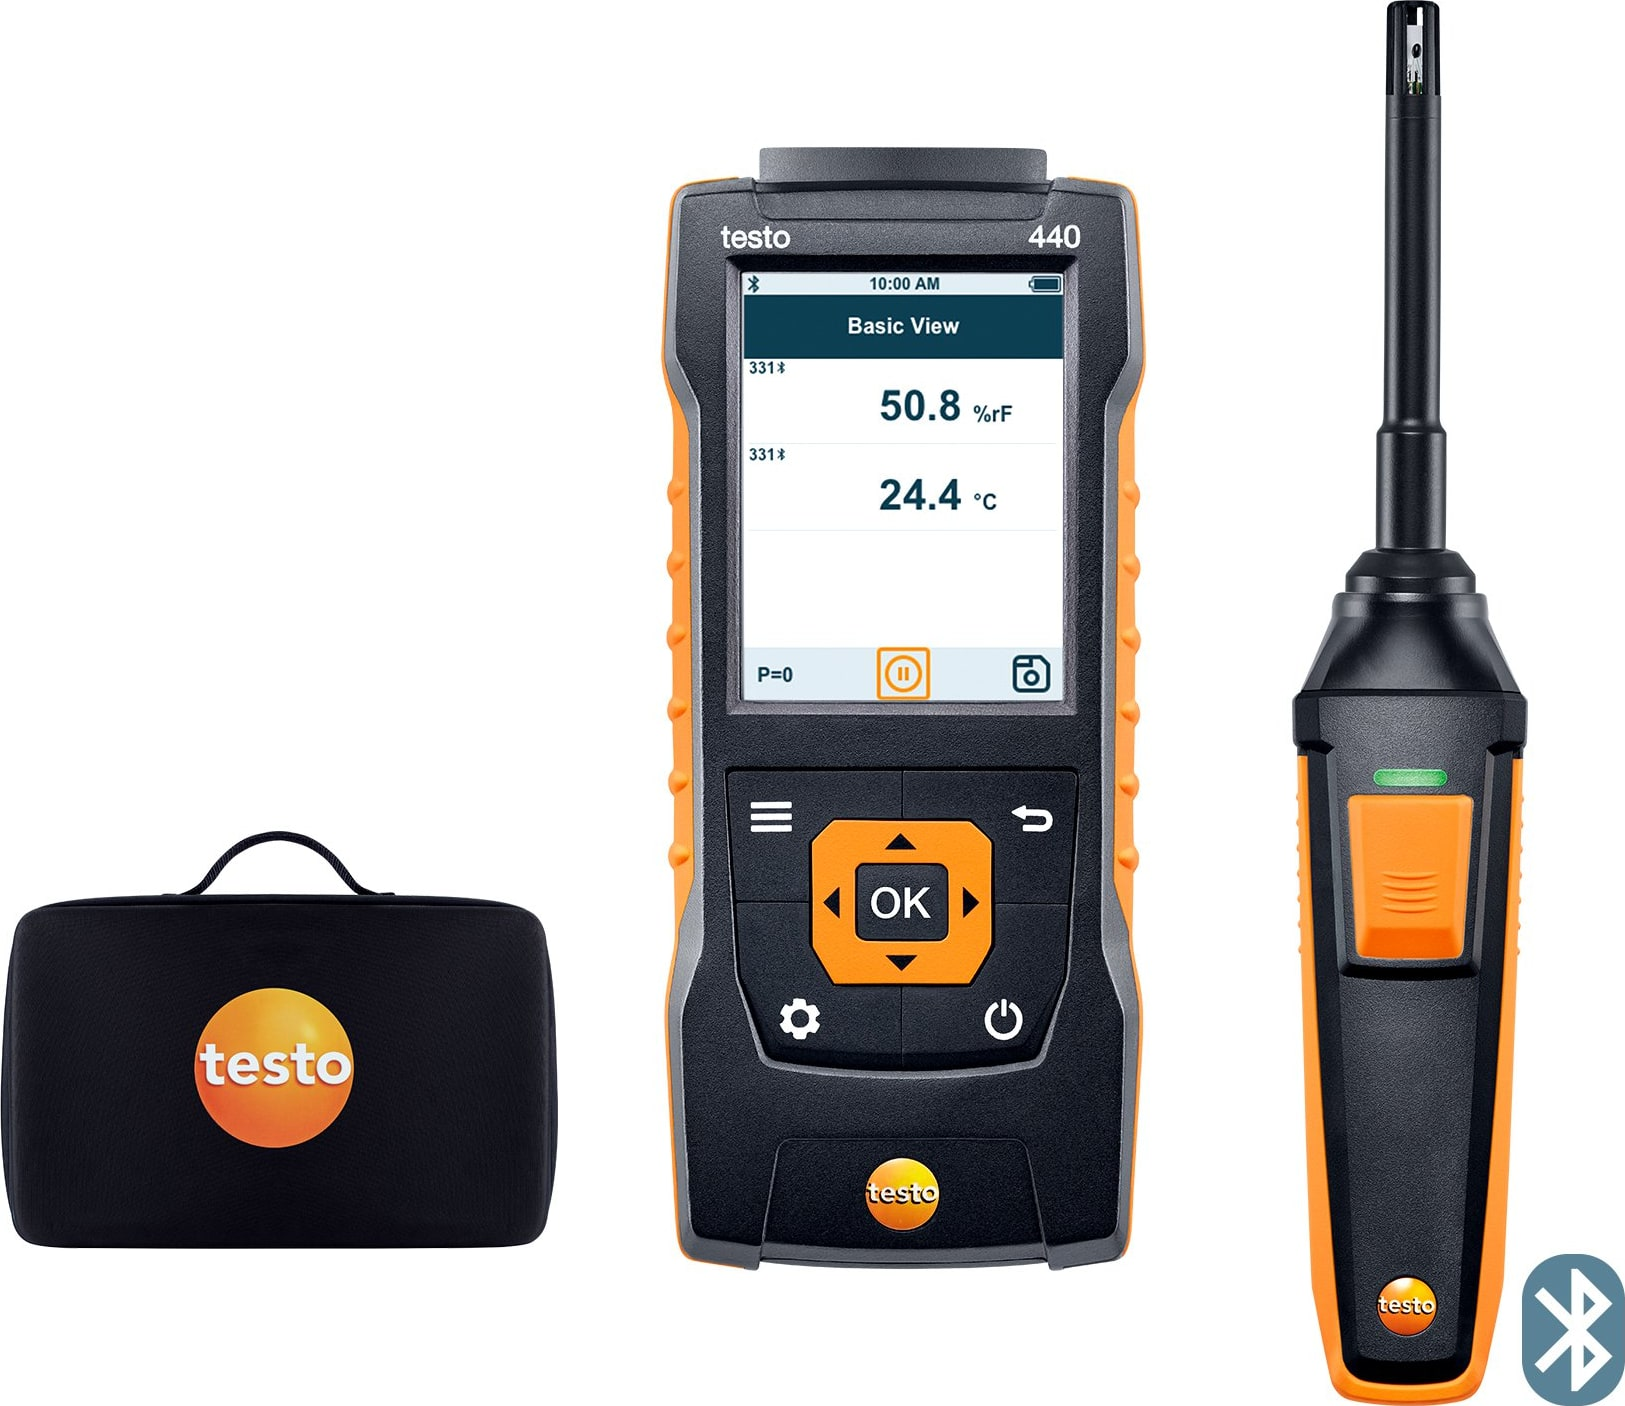 """Testo 440 Humidity Kit with Bluetooth (0.47"""") - Part Number 0563 4404"""